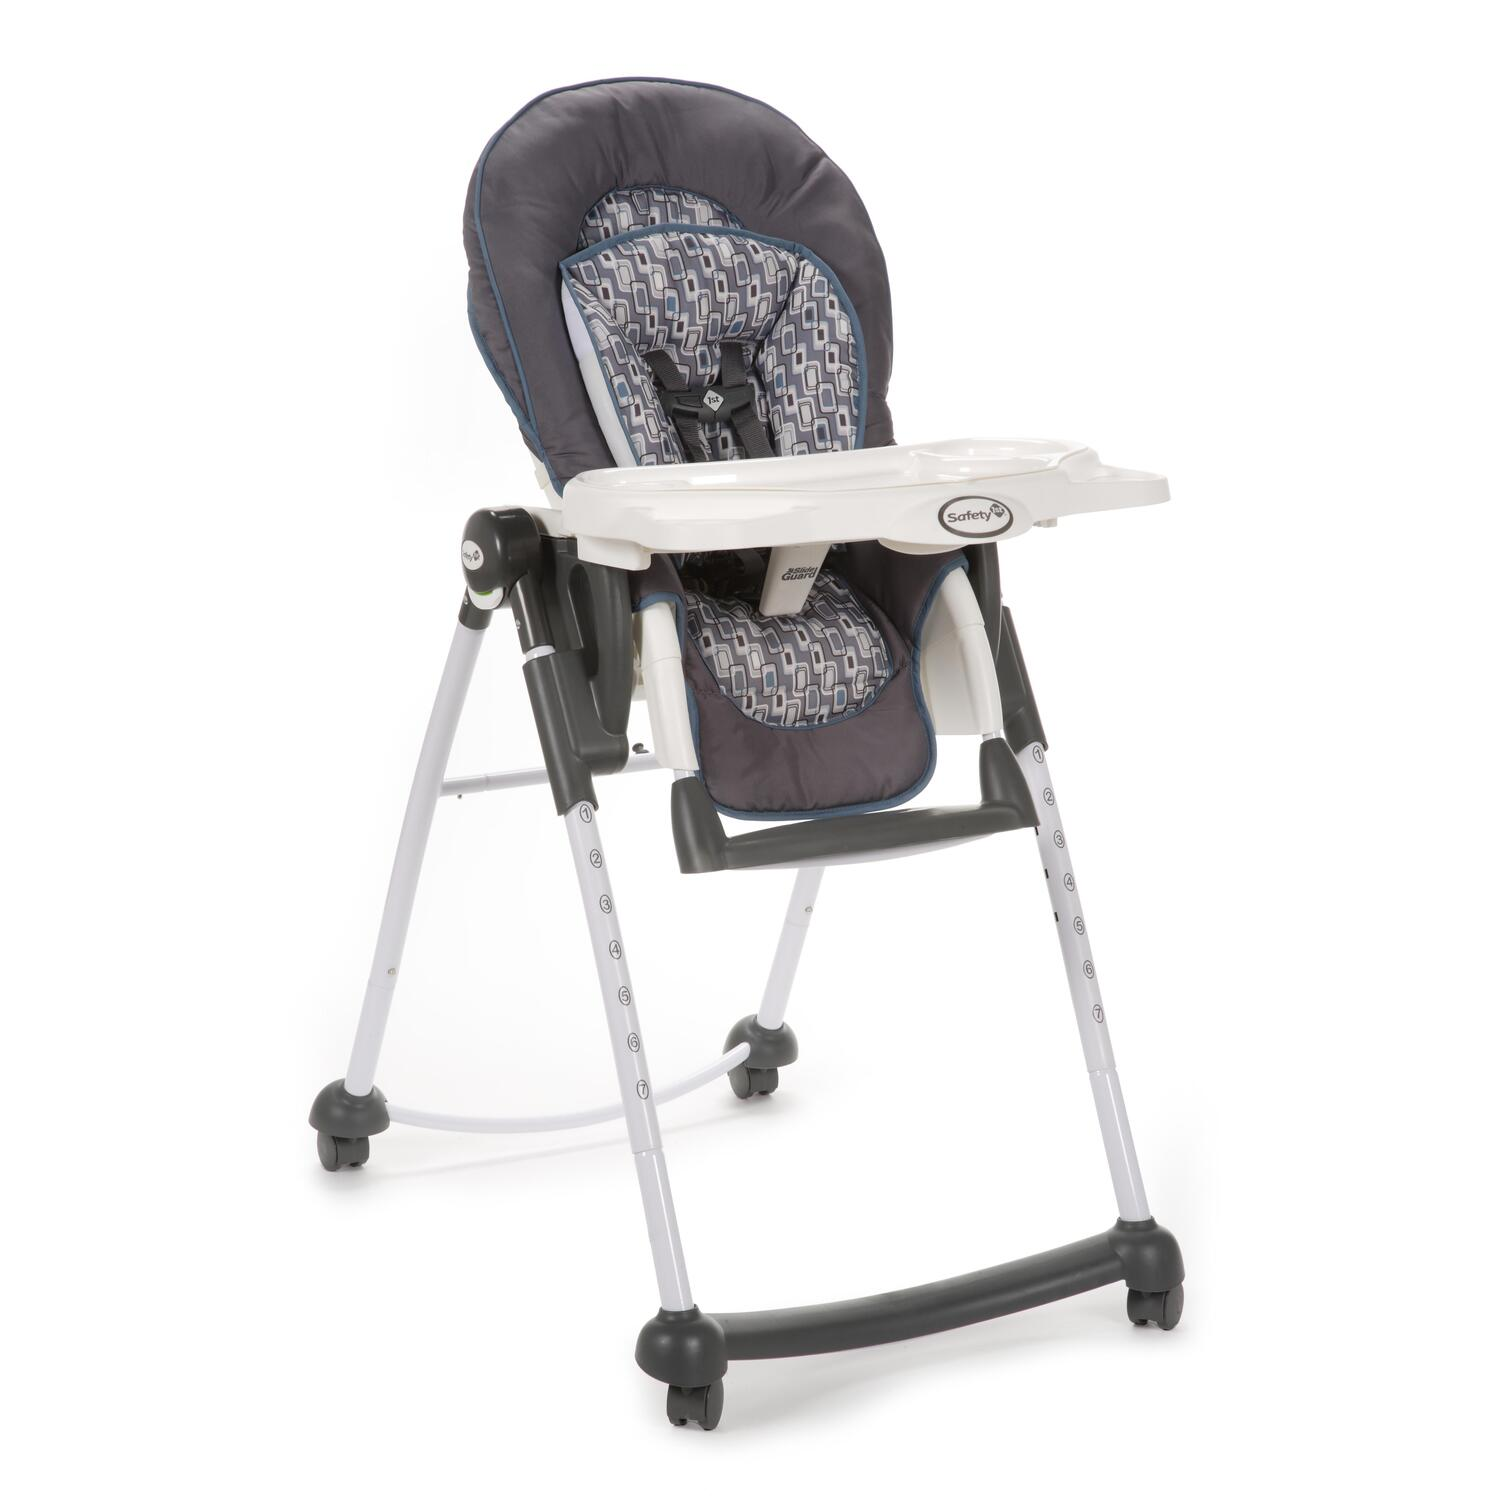 Safety 1st Safety 1st fy Seat High Chair Facet by OJ